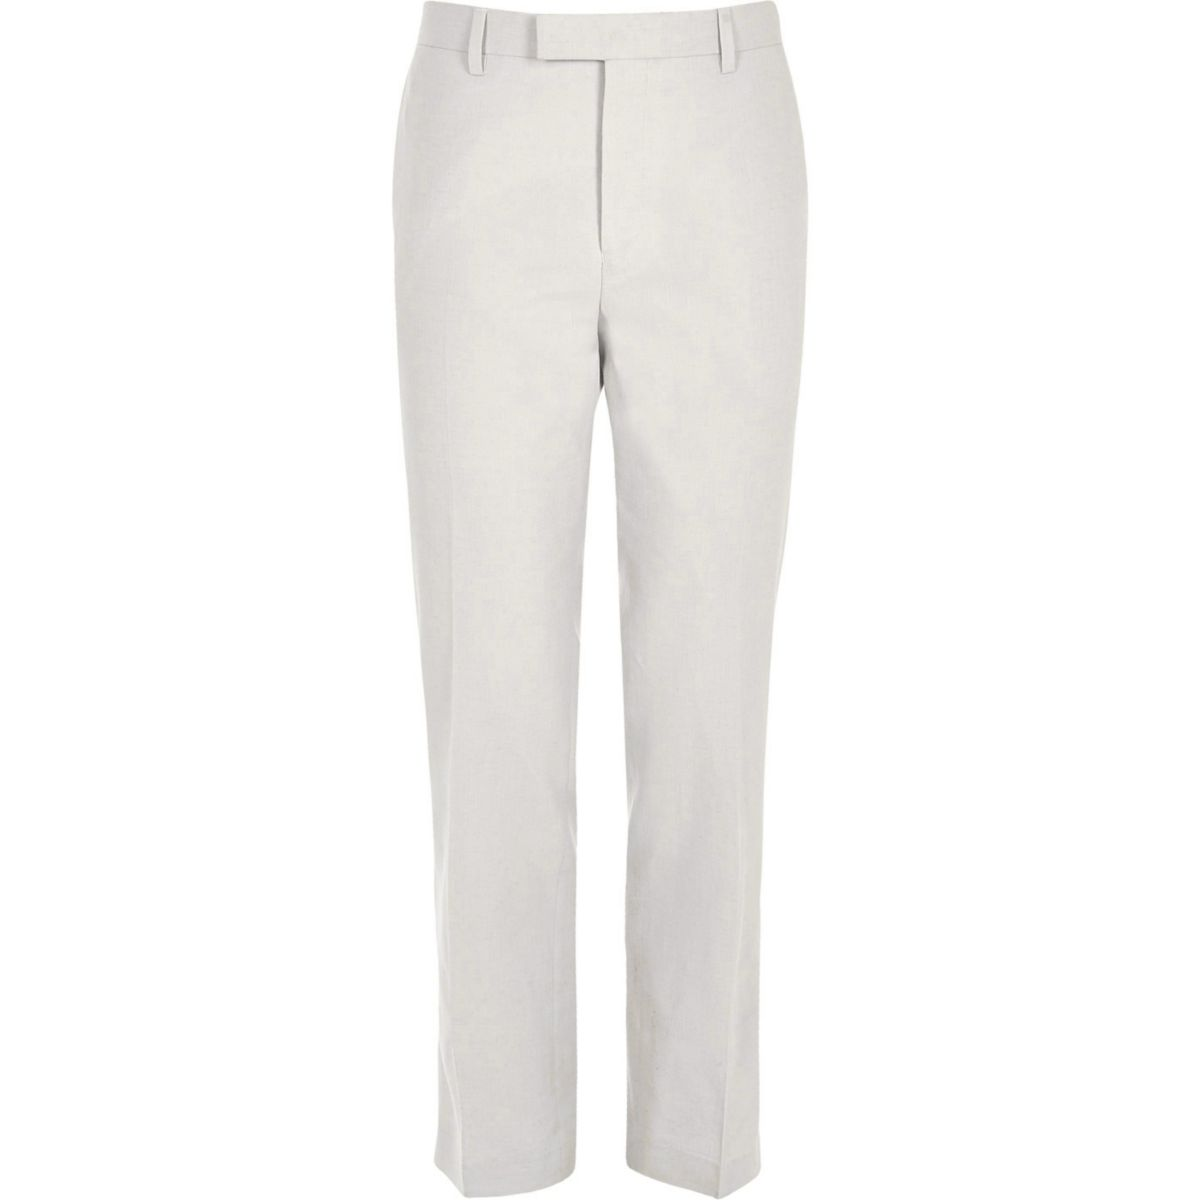 Beige Slim Fit Leinenhose